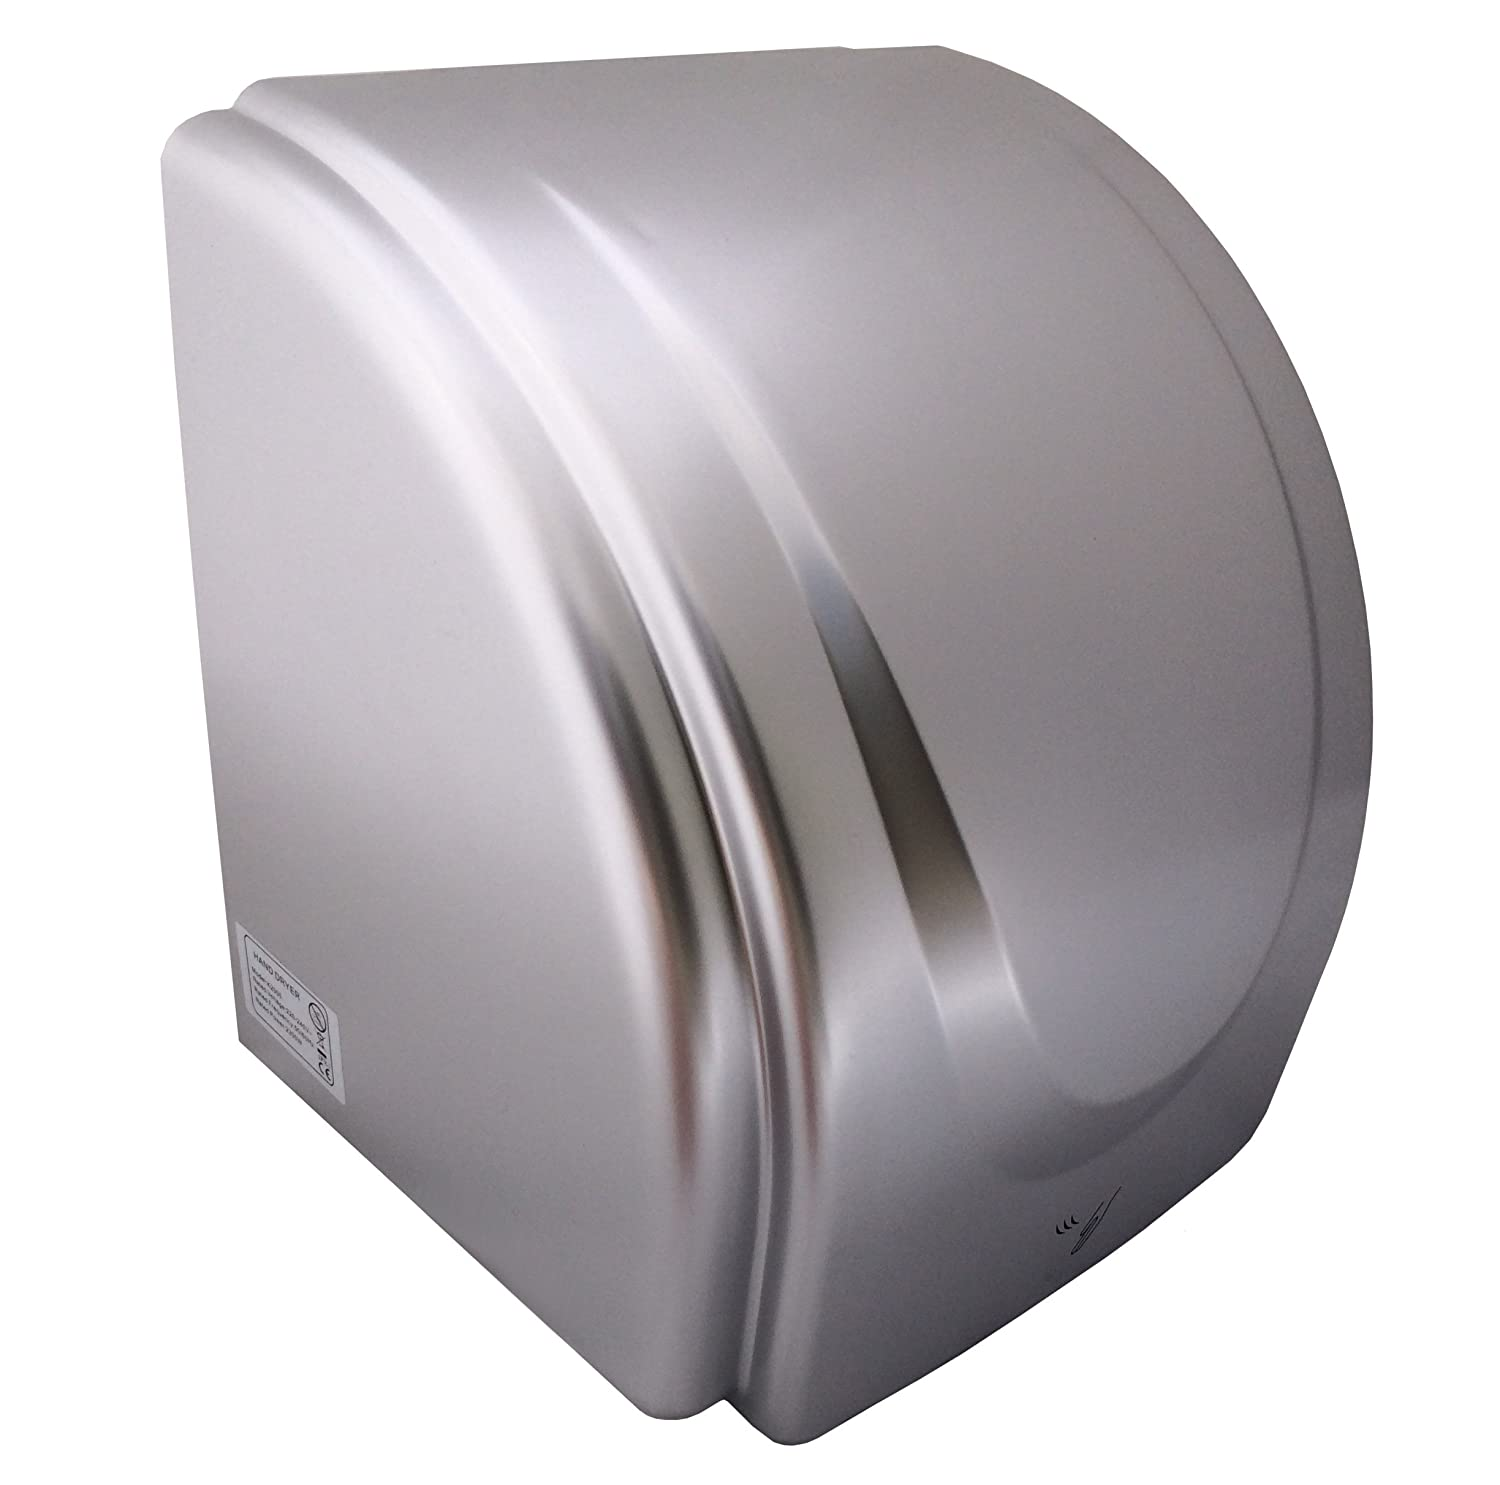 SILVER ABS Electric Hand Dryer Auto warm air Automatic drier T2300S 2300w Orka